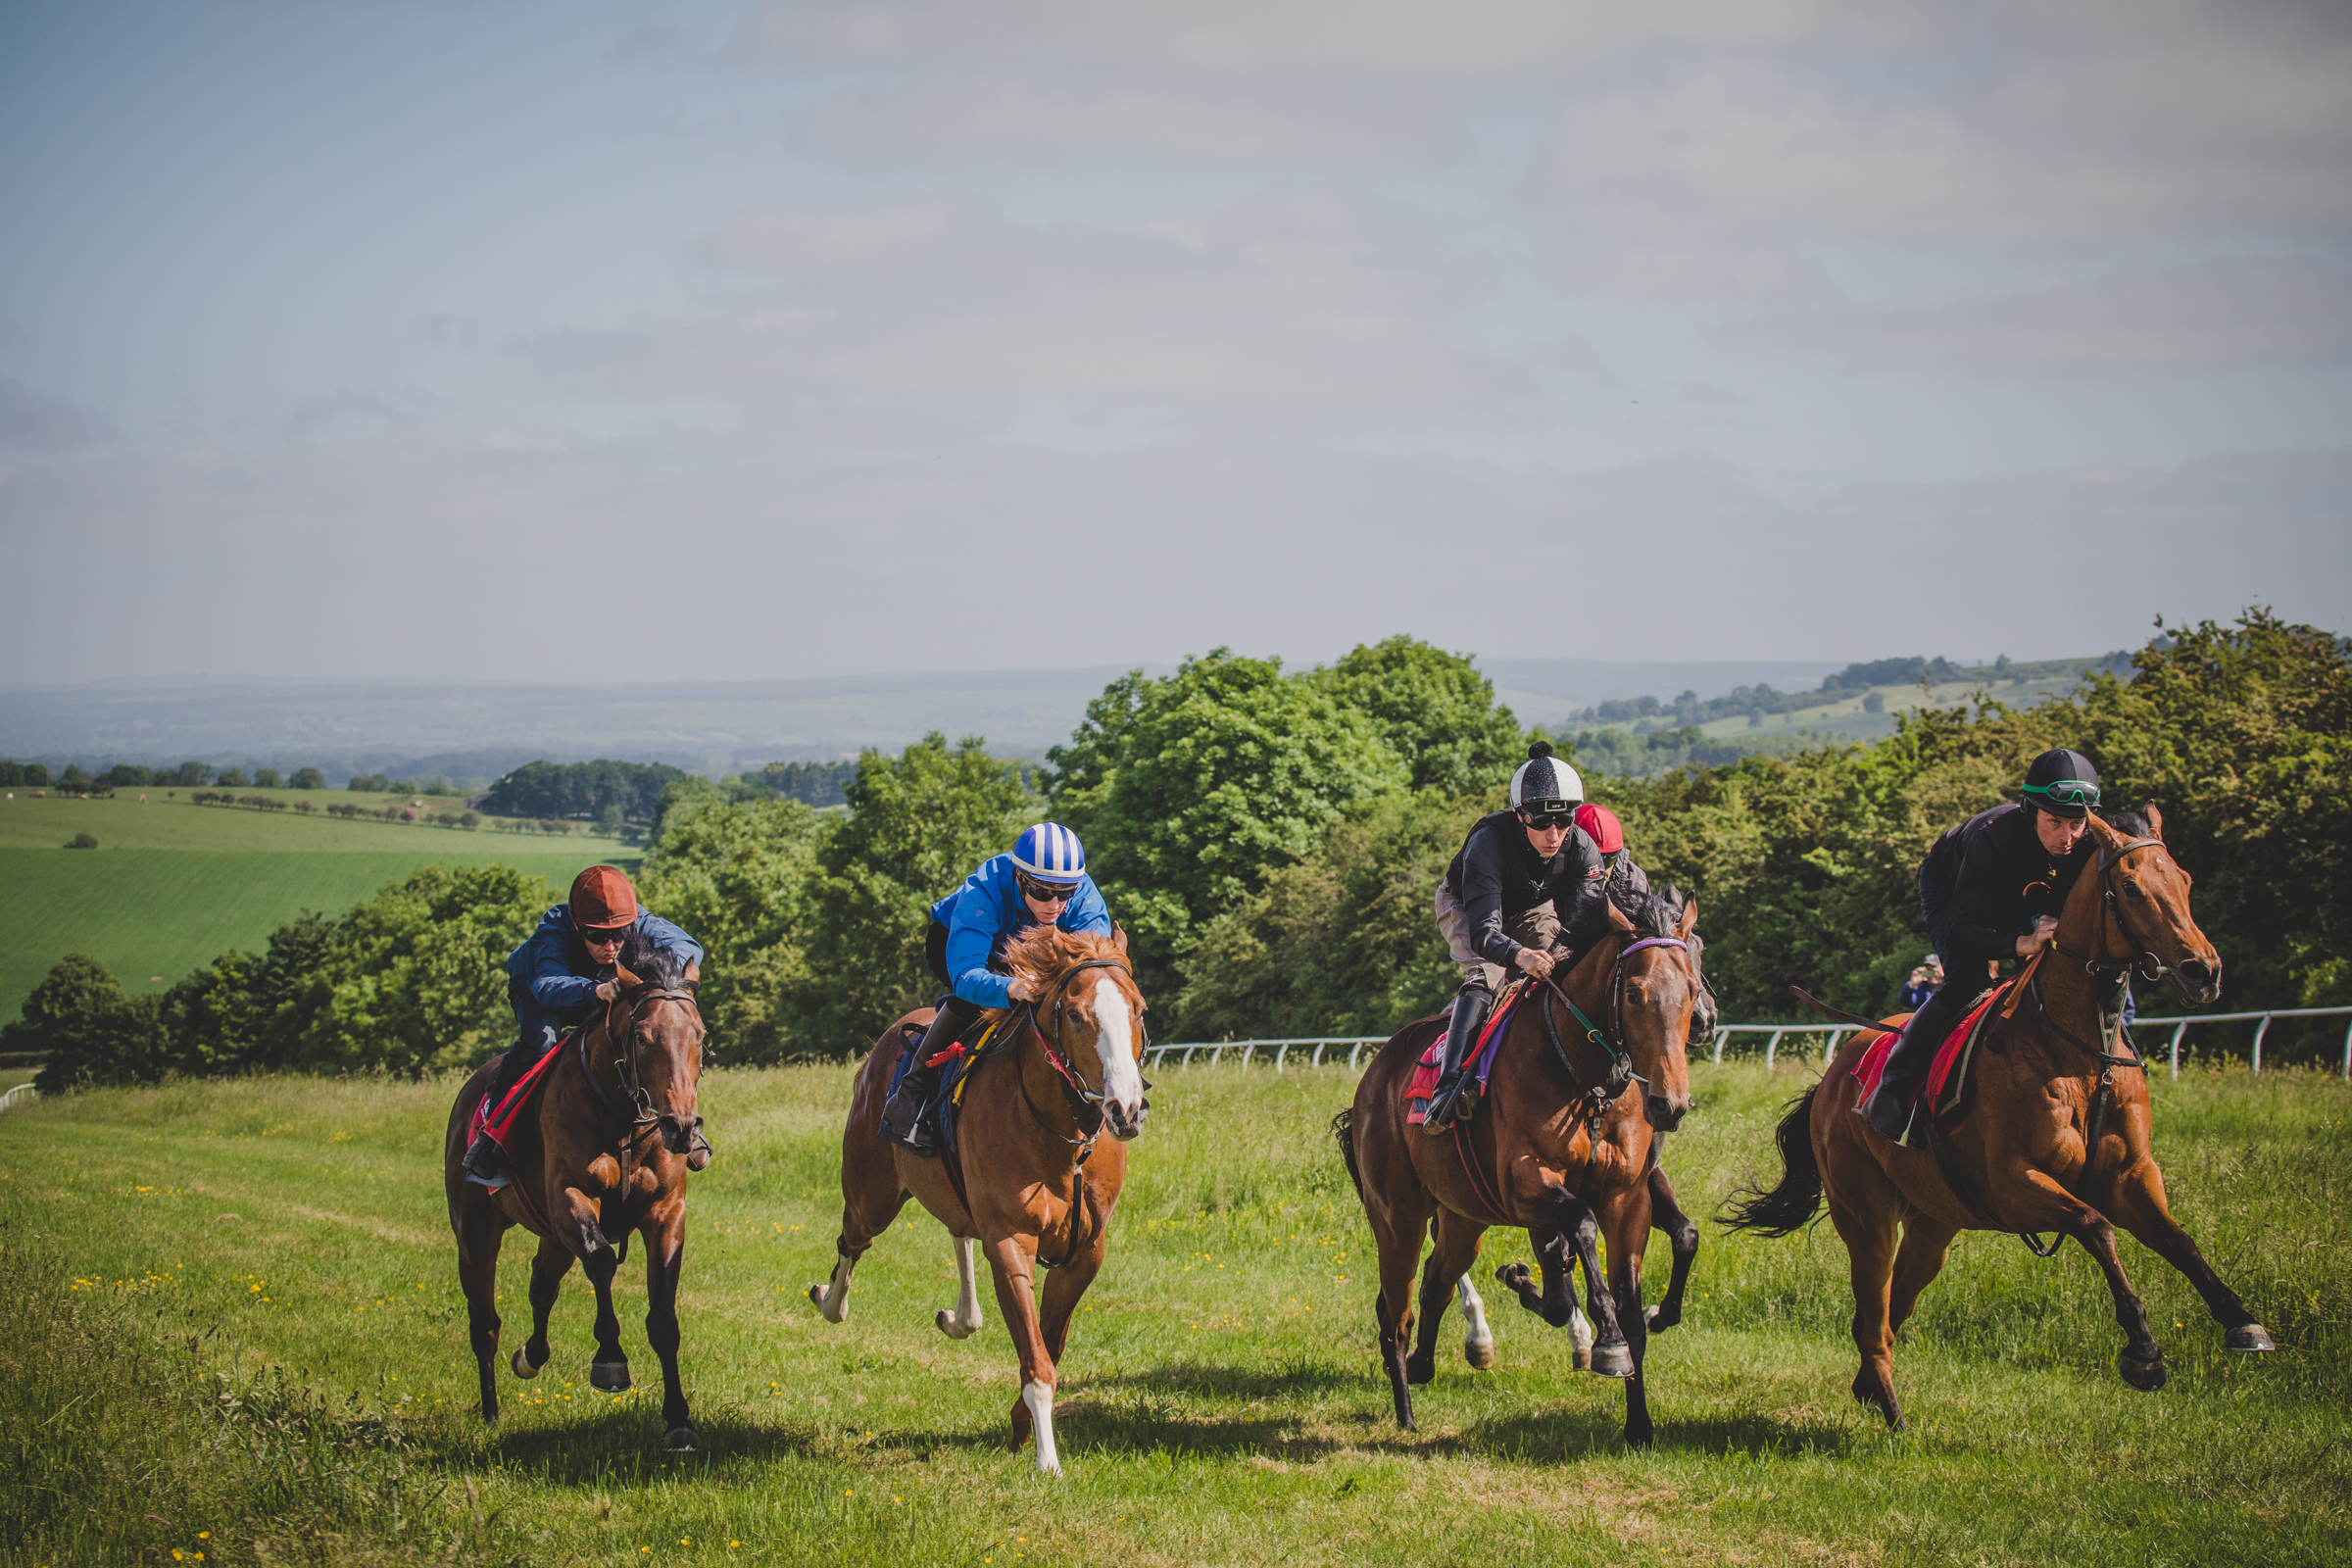 At the gallops